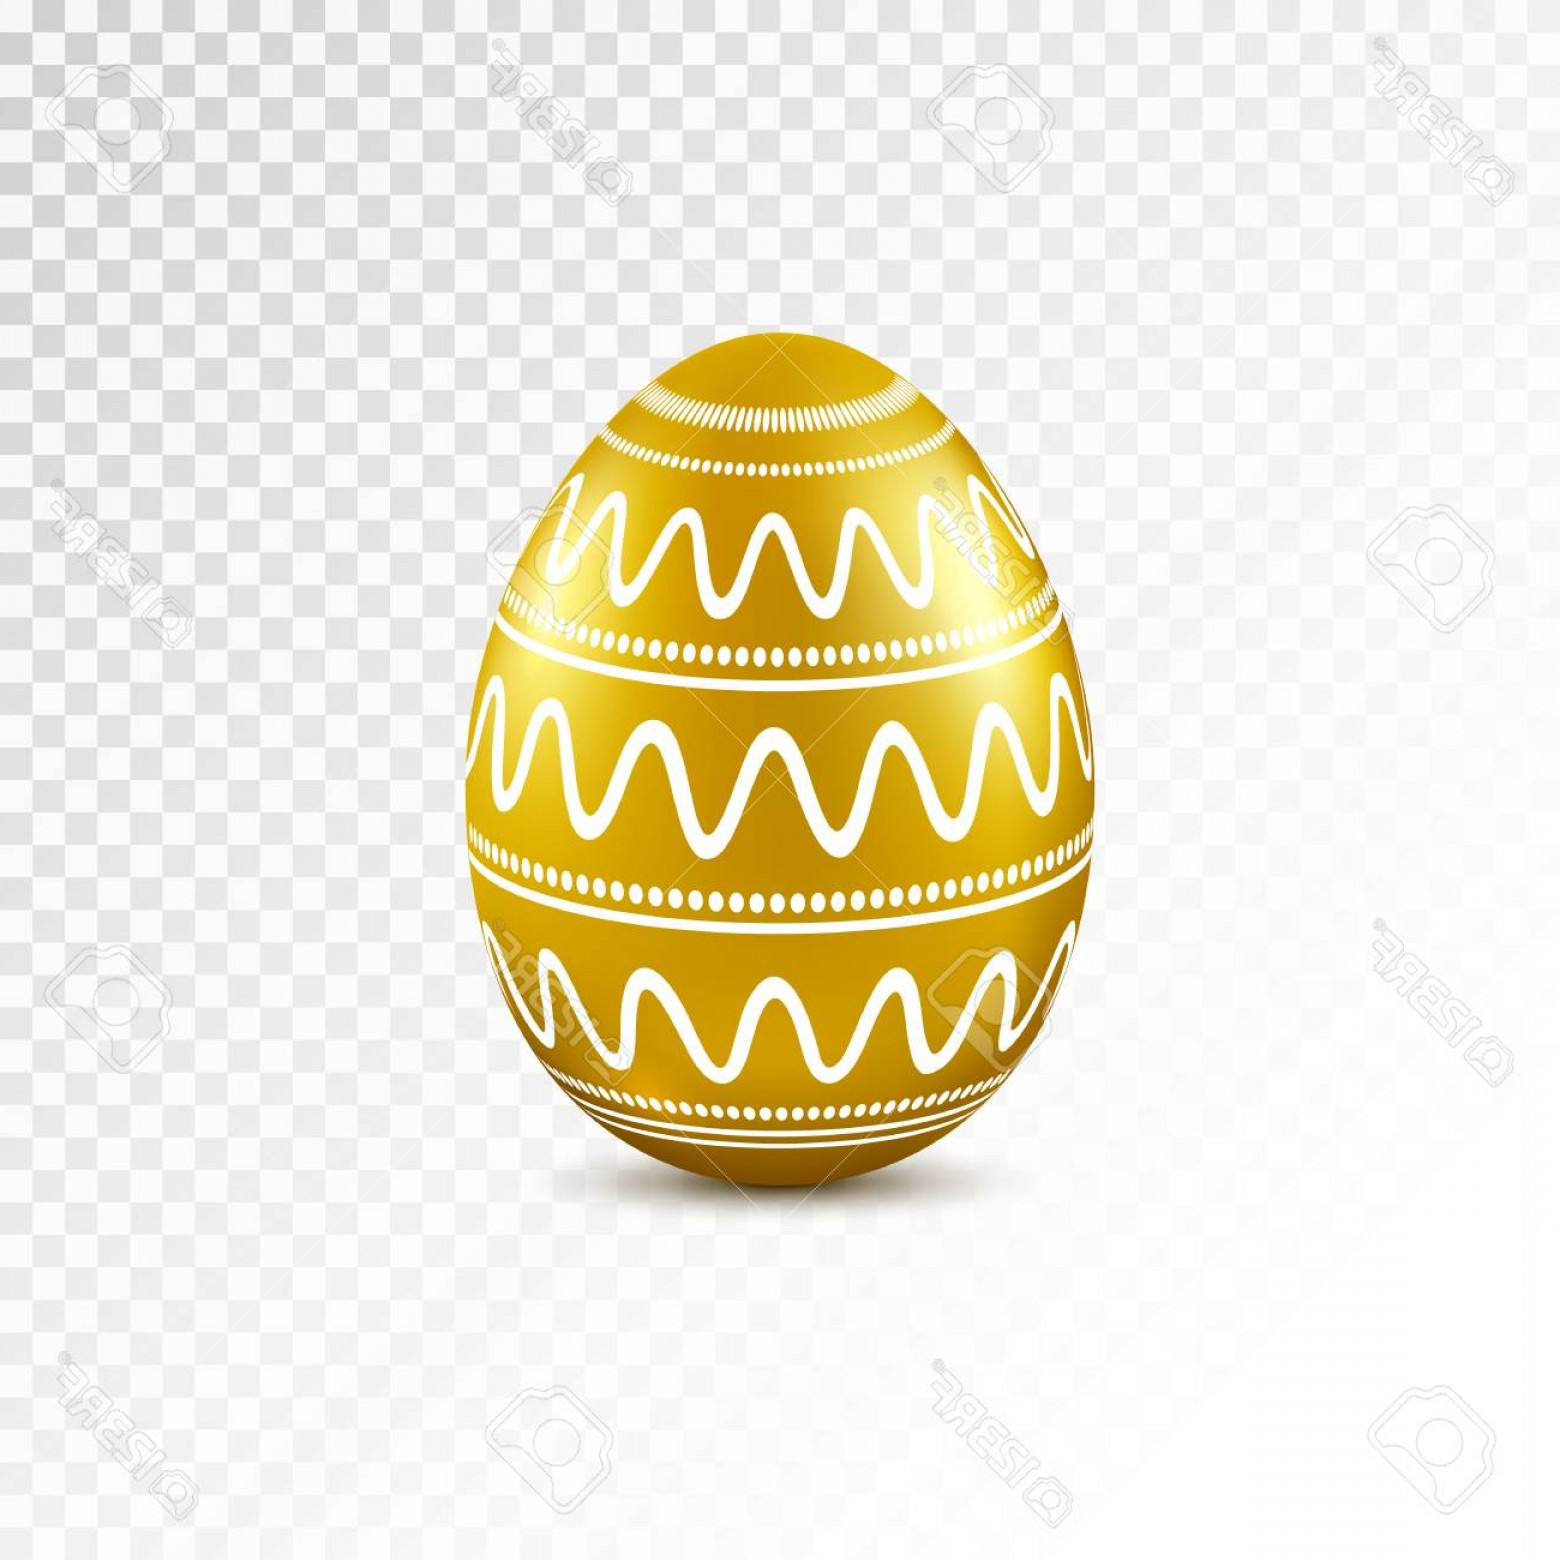 Easter Vector Art No Background: Photostock Vector Gold Easter Egg With Geometric Pattern Isolated On Transparent Background Vector Illustration